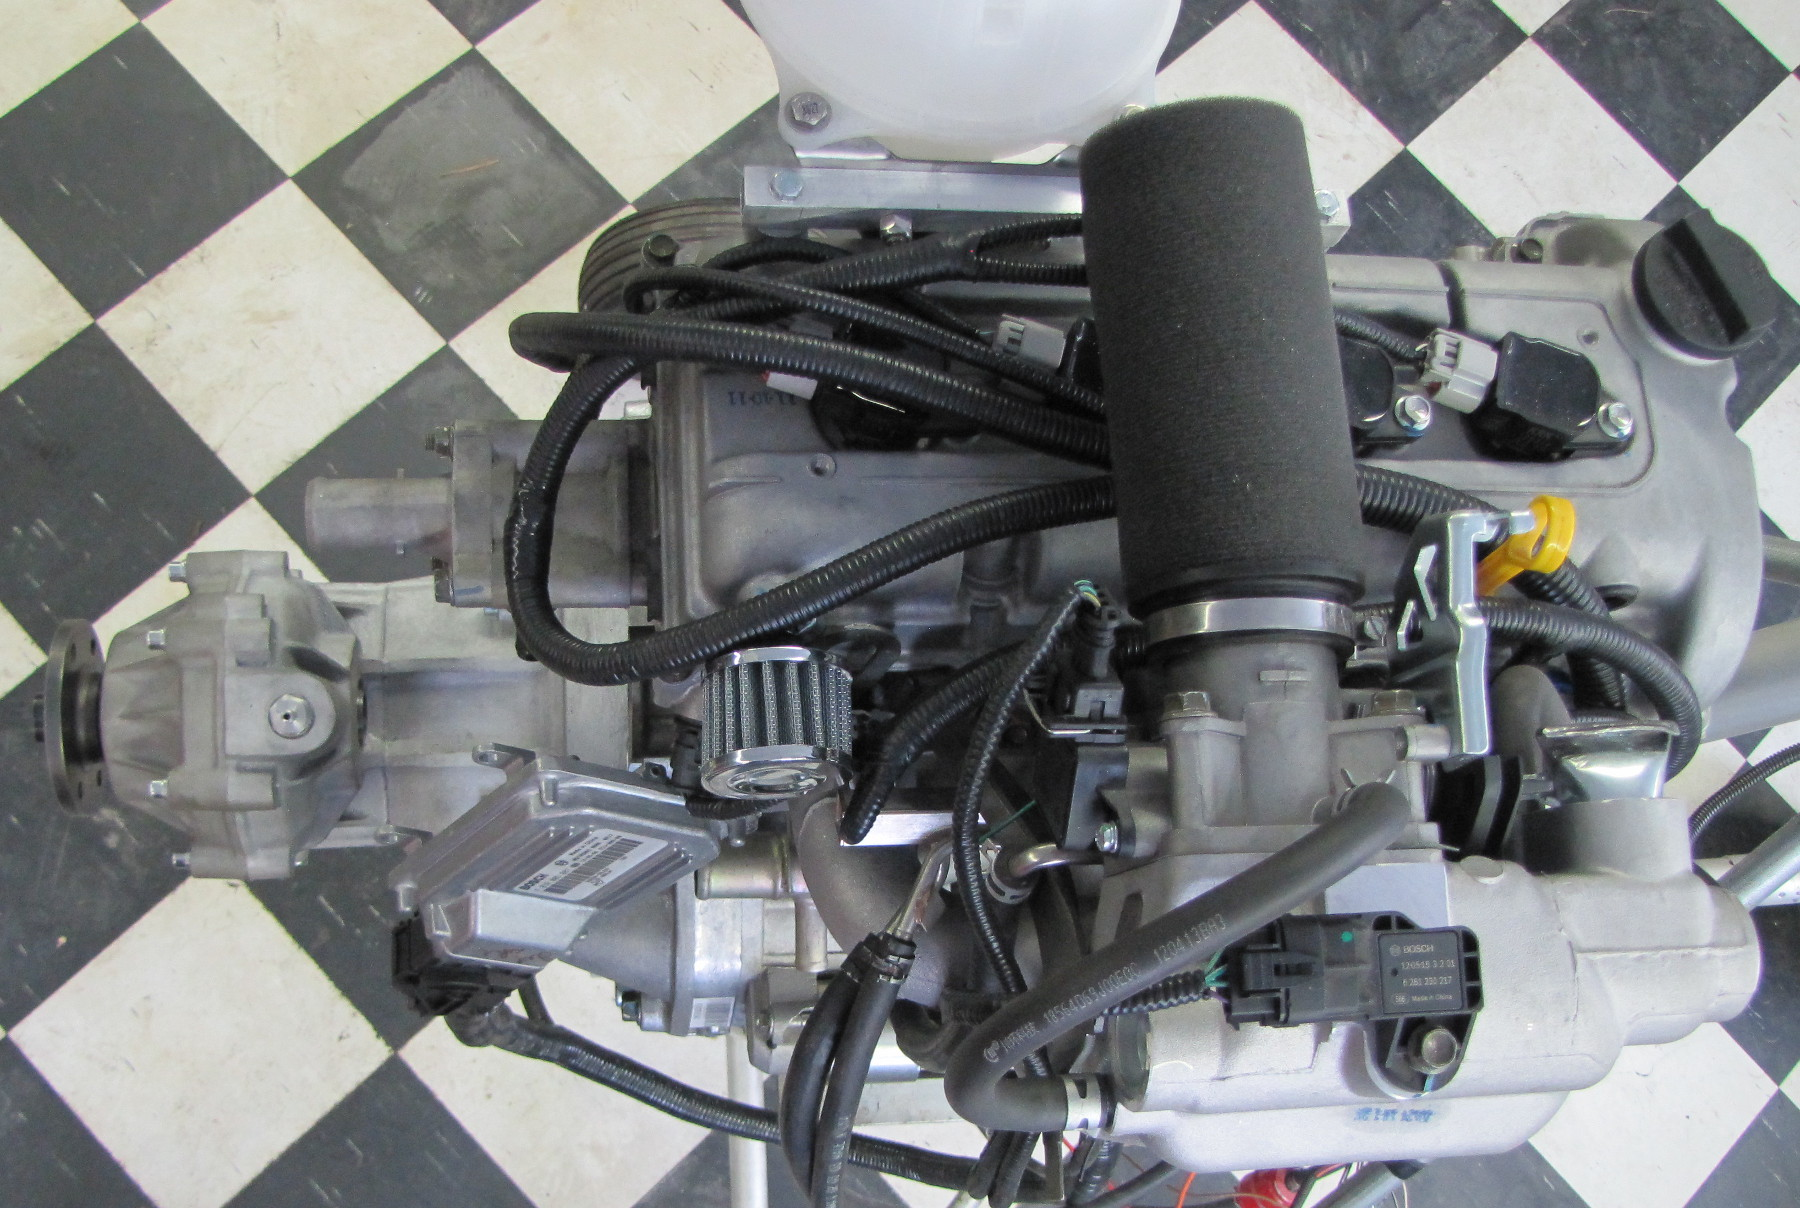 hight resolution of spg gearbox kit for new suzuki k series engines has been designed and made in 2015 the first k14b was converted tested and sent to an airboat company for